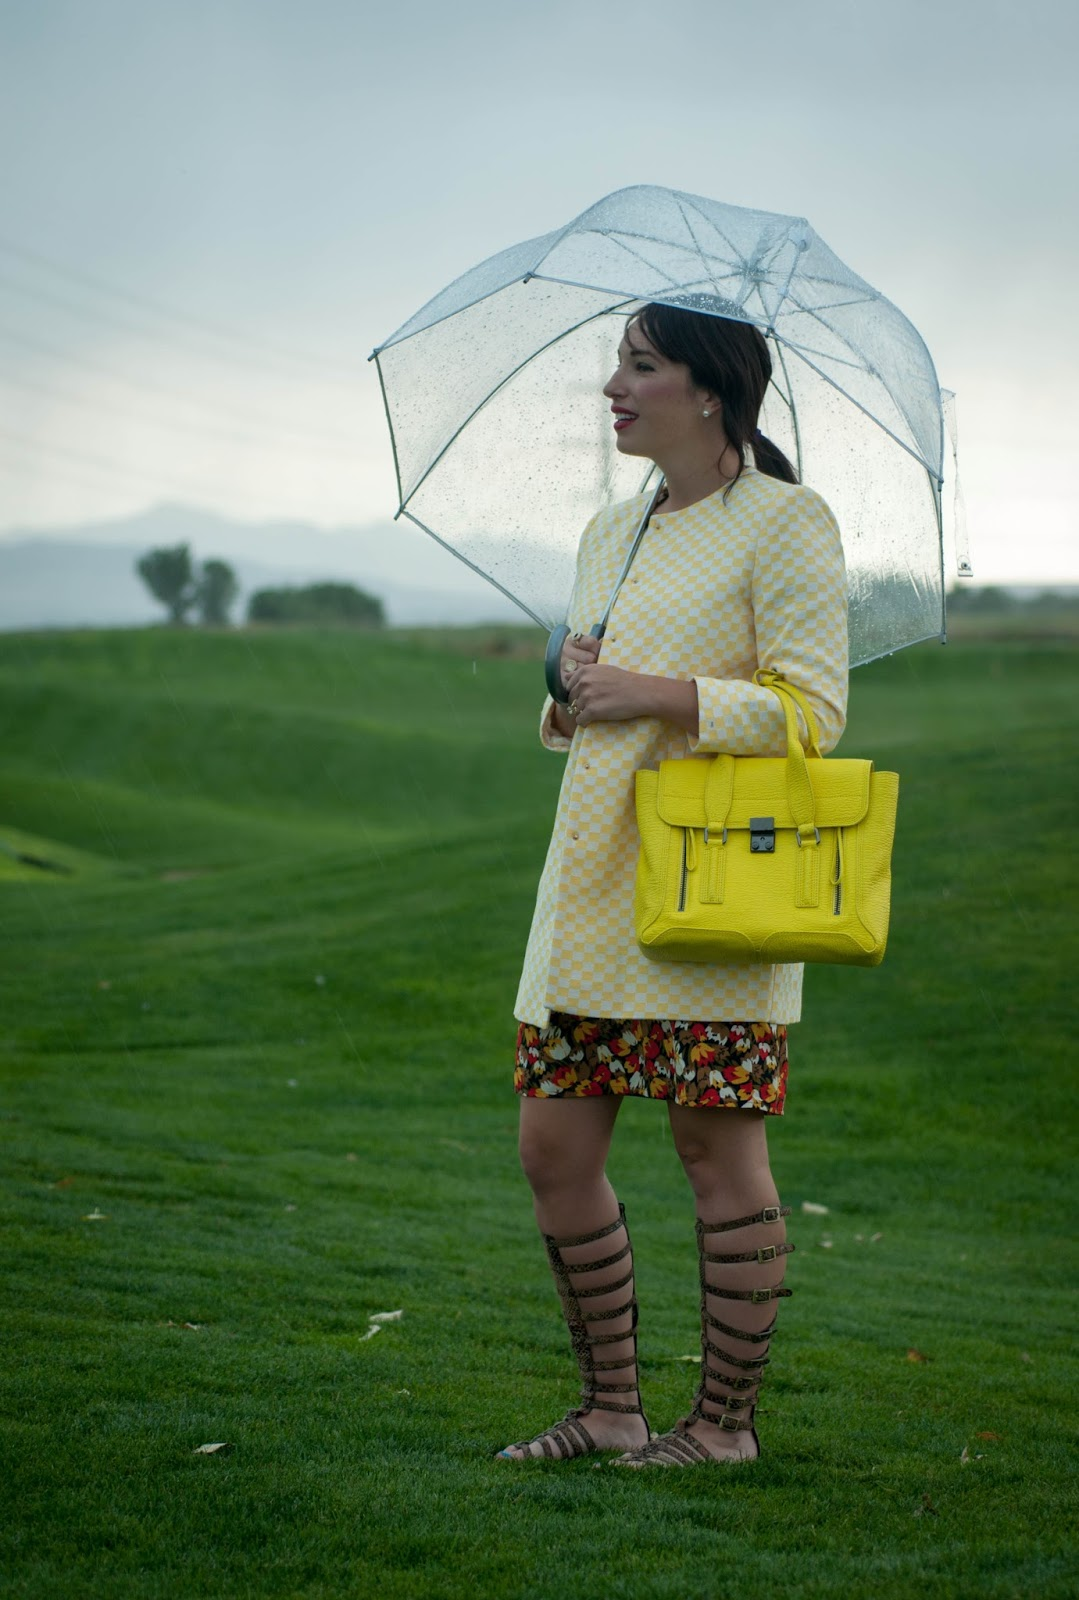 target umbrella, phillip lim pashli satchel, zara coat, gladiator sandals, floral dress, ootd